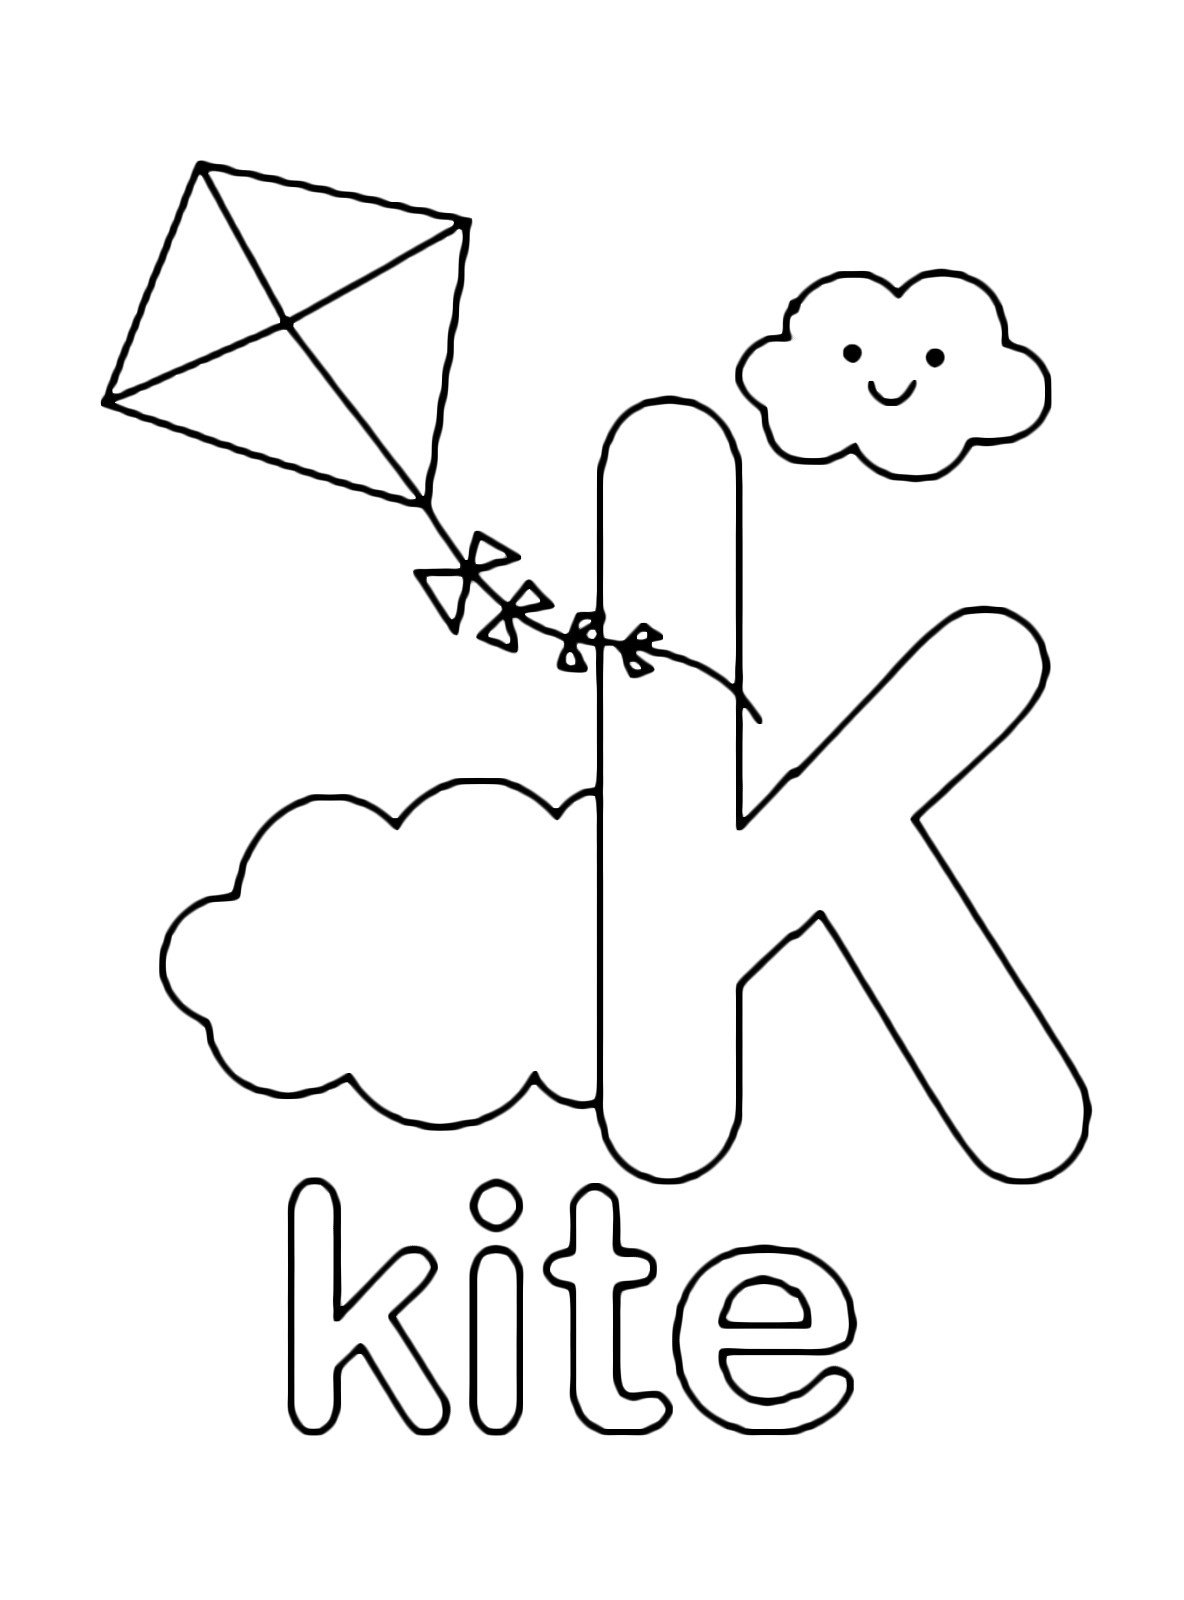 Letters and numbers - k for kite lowercase letter